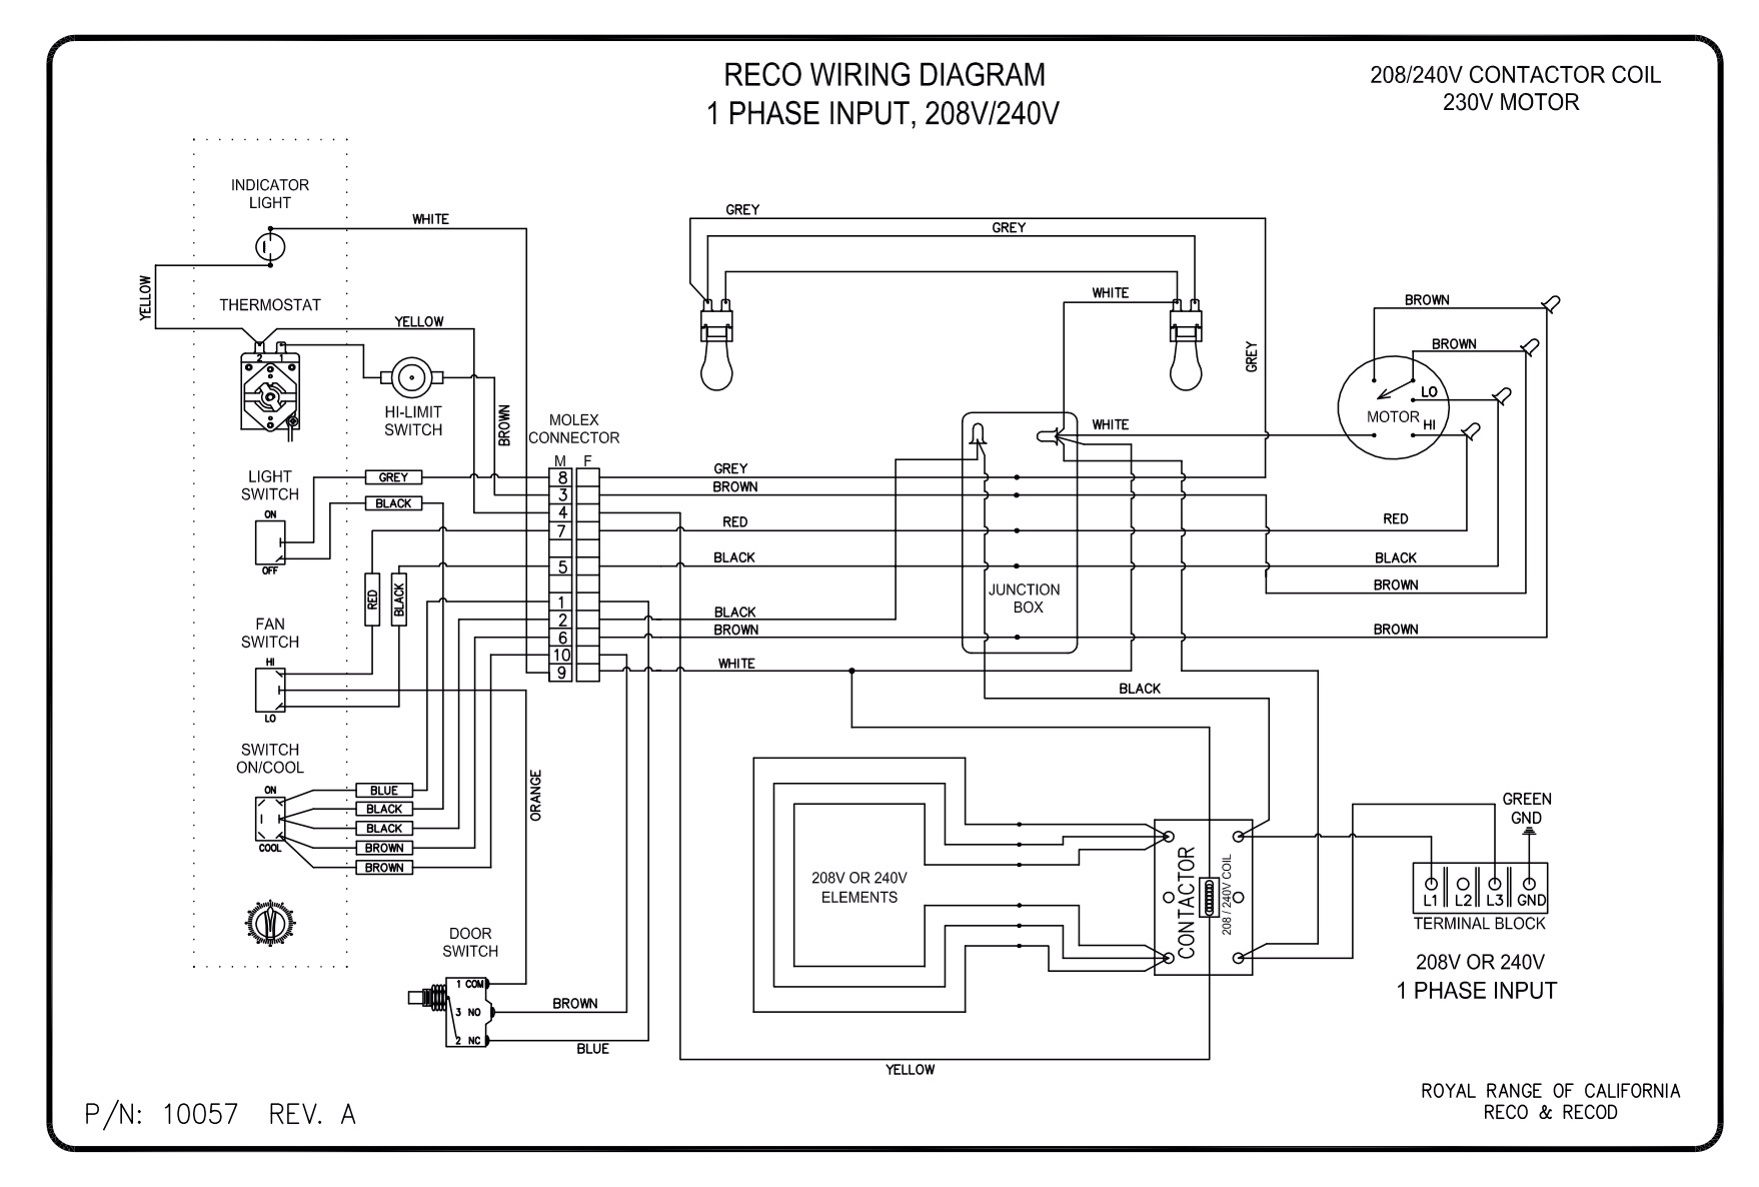 RECO1 wiring diagrams royal range of california oven wiring diagrams at cos-gaming.co